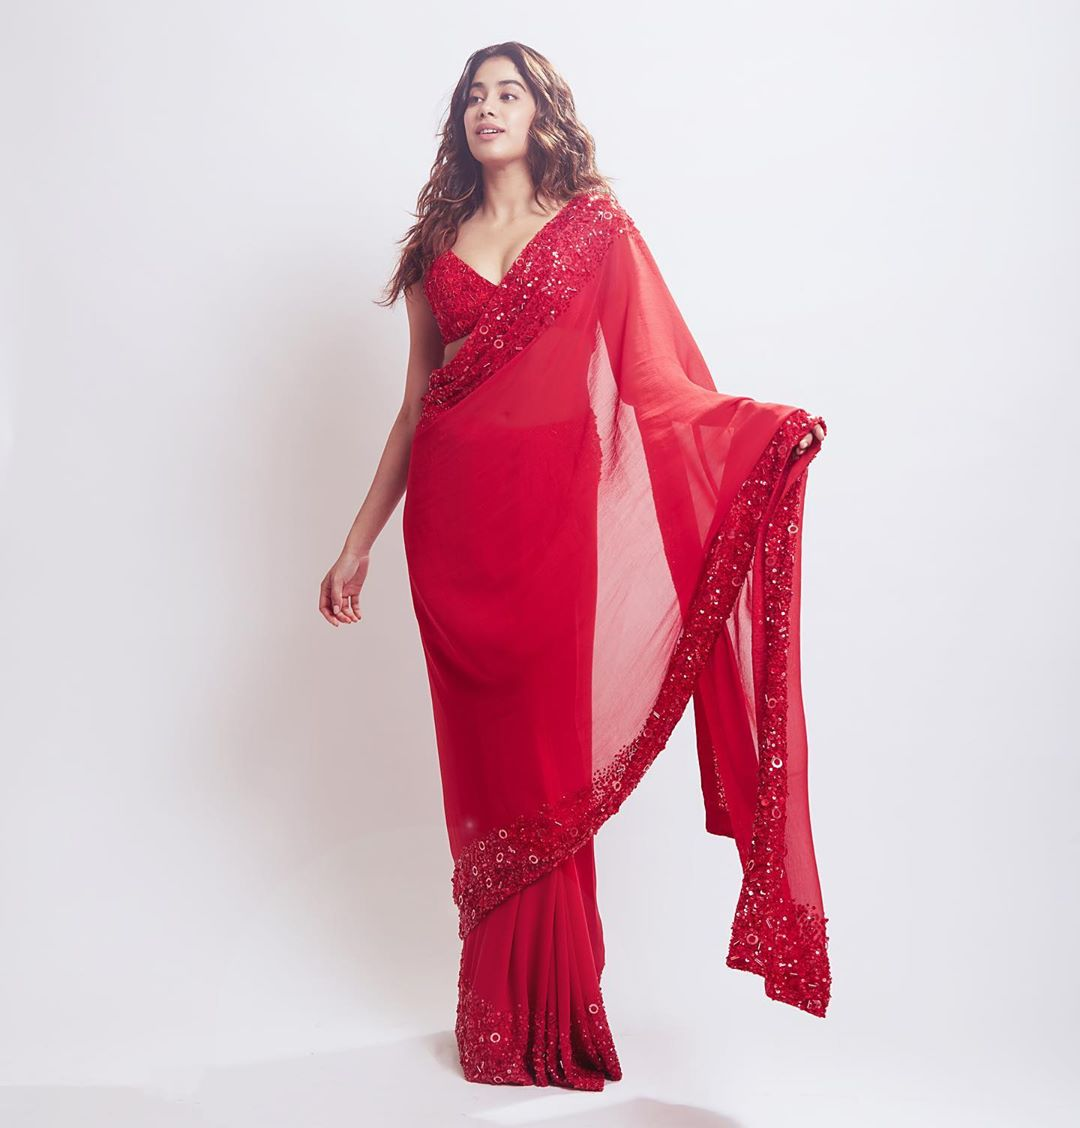 Janhvi Kapoor in Manish Malhotra's Red Saree